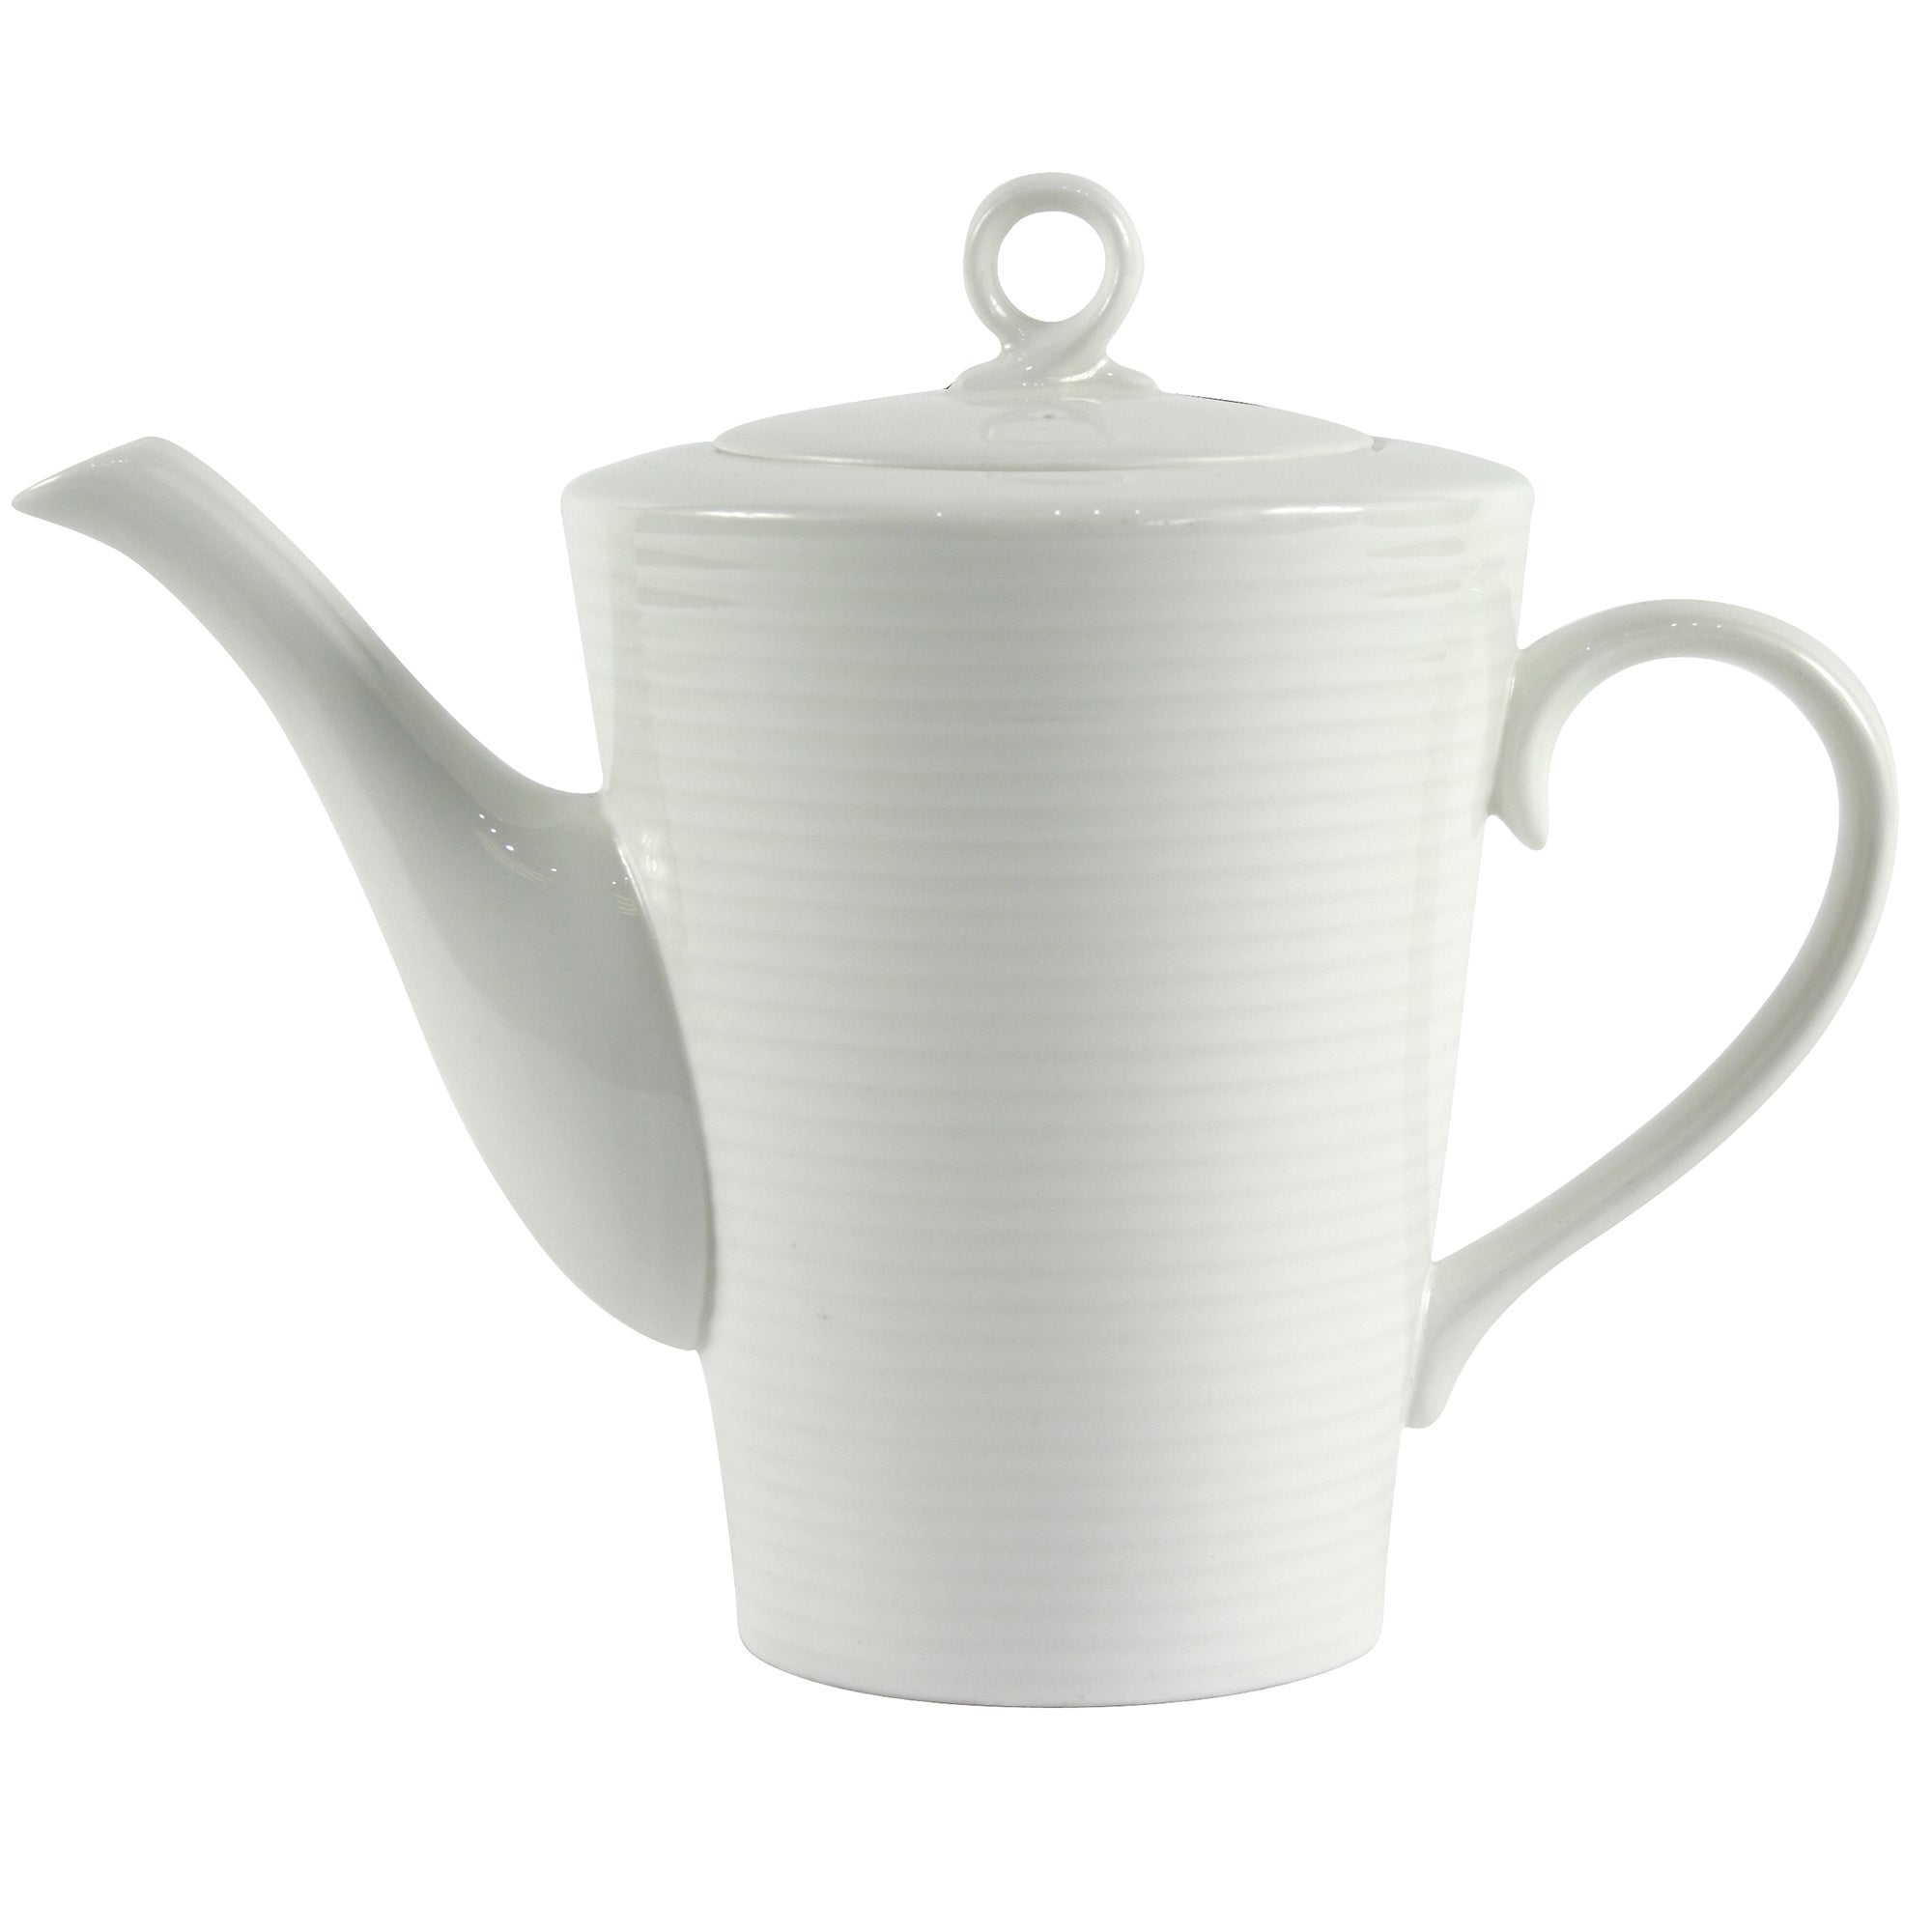 Dorma Windsor Teapot